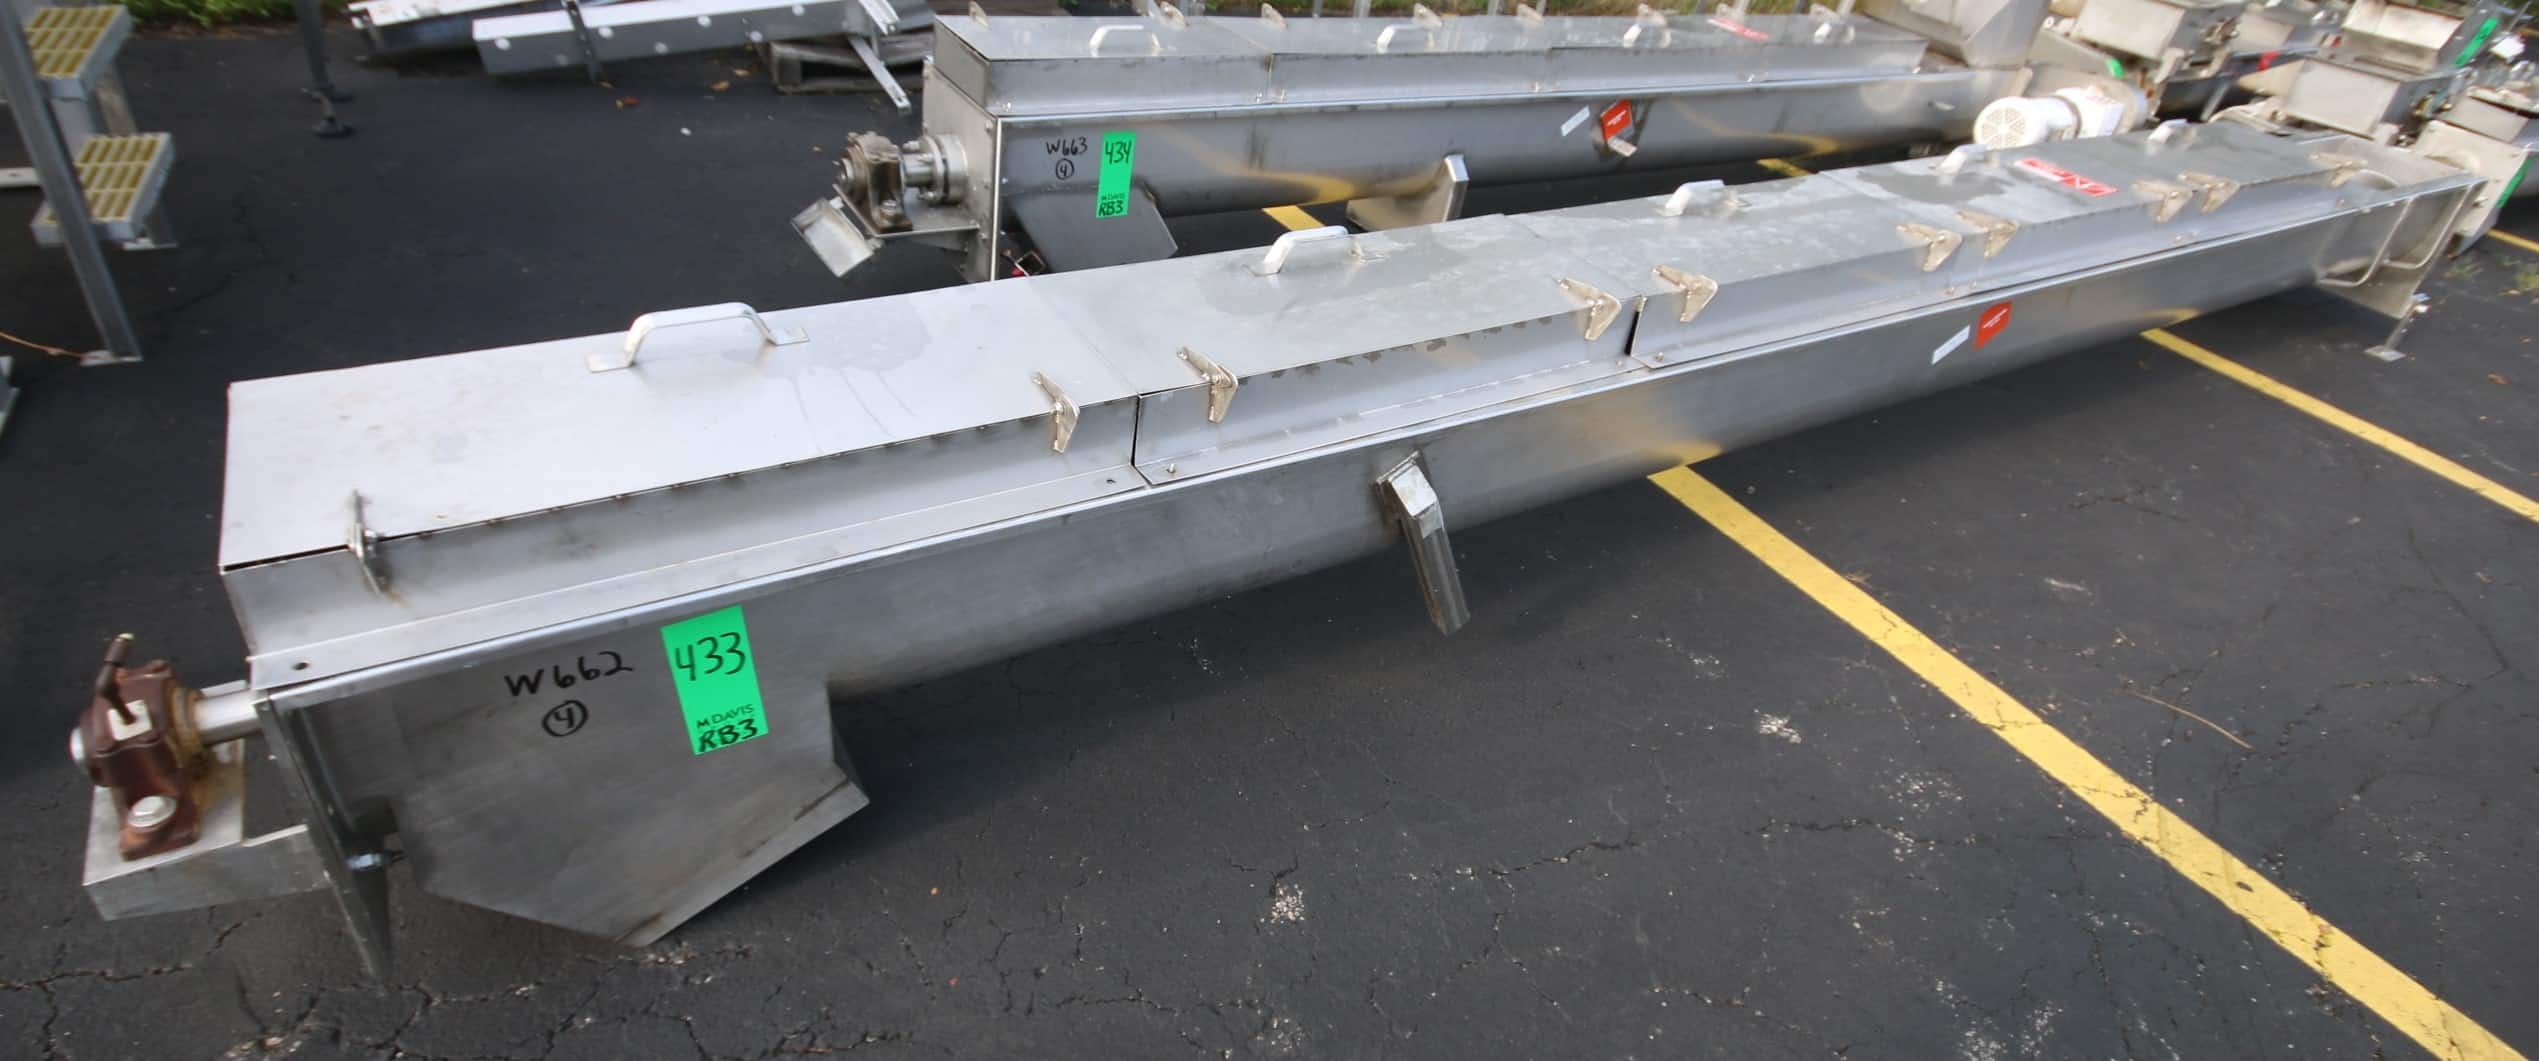 "18 ft L All S/S Power Auger Conveyor, with 12"" S/S Auger, 5 hp / 3450 rpm Drive Motor, 208/230/460 V 3 Phase, with Top Mounted Hinged Covers with Screened Guards, 13"" x 13"" Bottom Discharge"